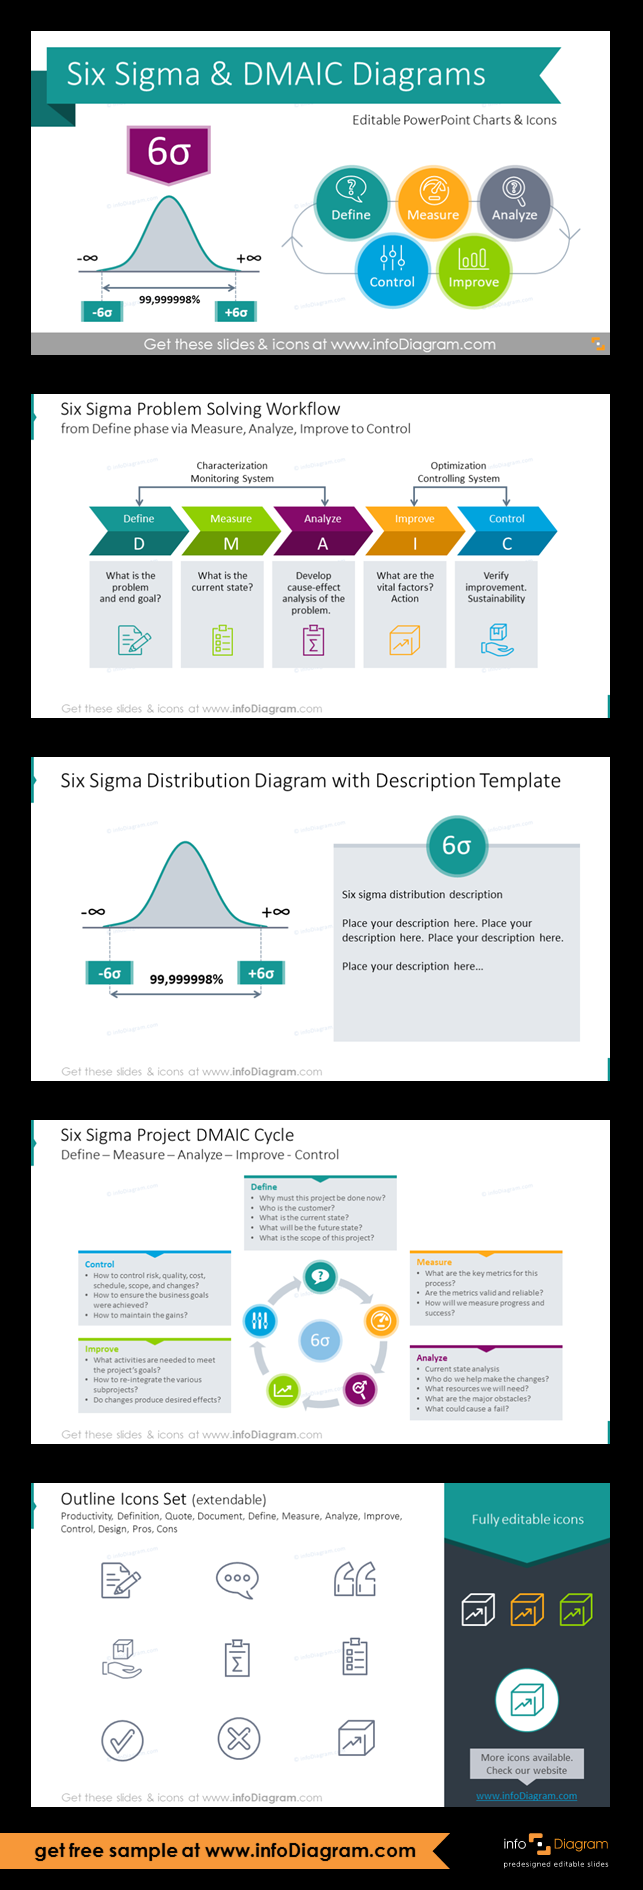 medium resolution of powerpoint template for six sigma training and presentation materials six sigma problem solving workflow six sigma distribution diagram with description